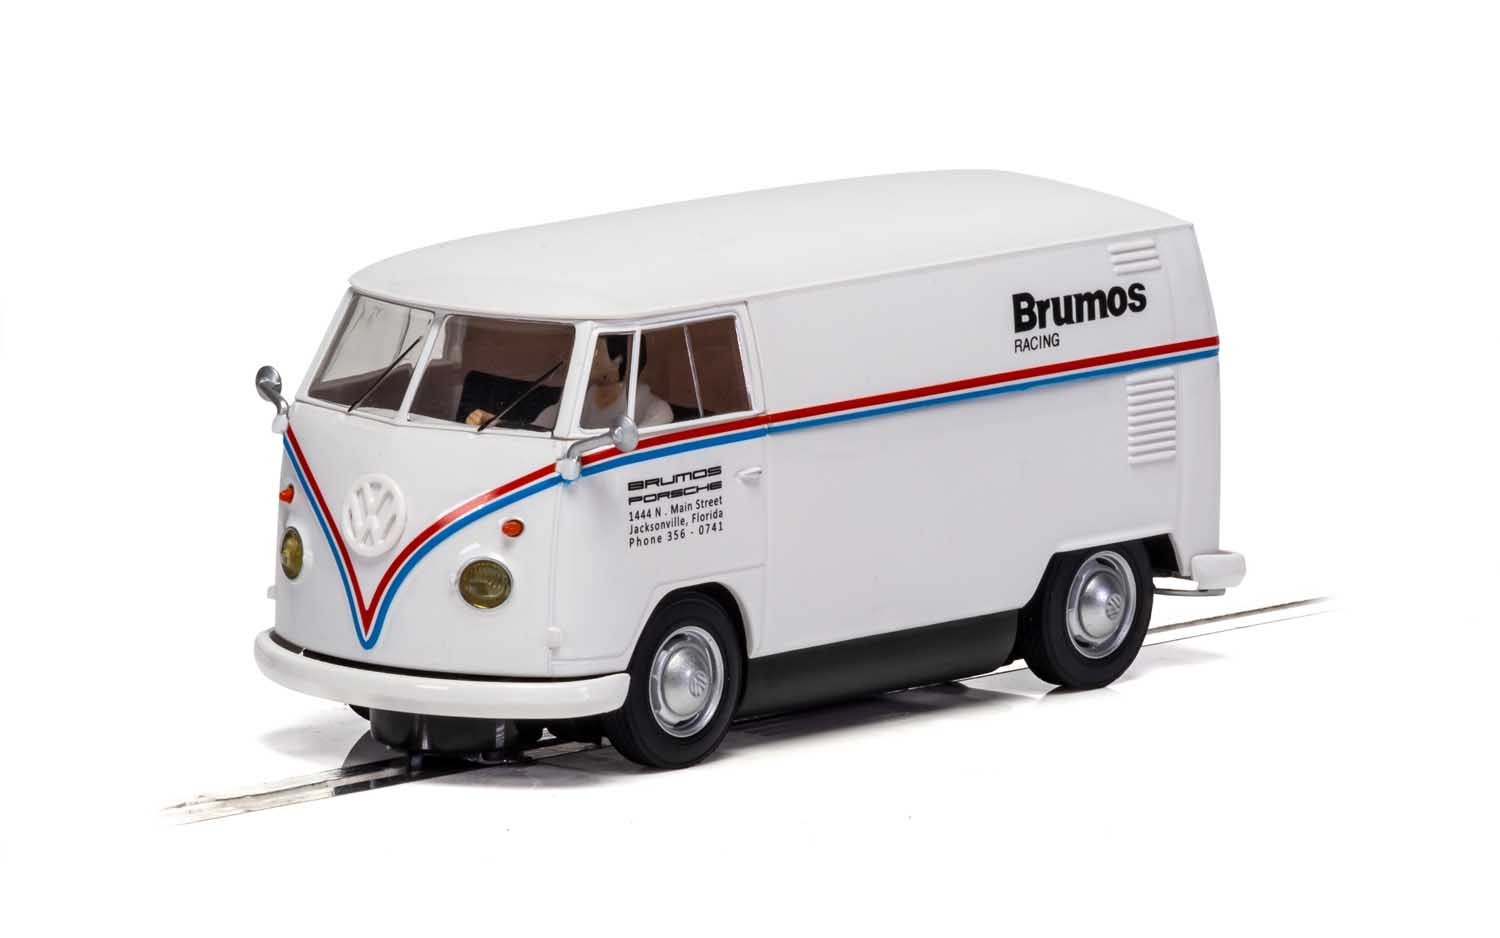 C4086 Scalextric VW Panel Van T1b, Brumos Racing